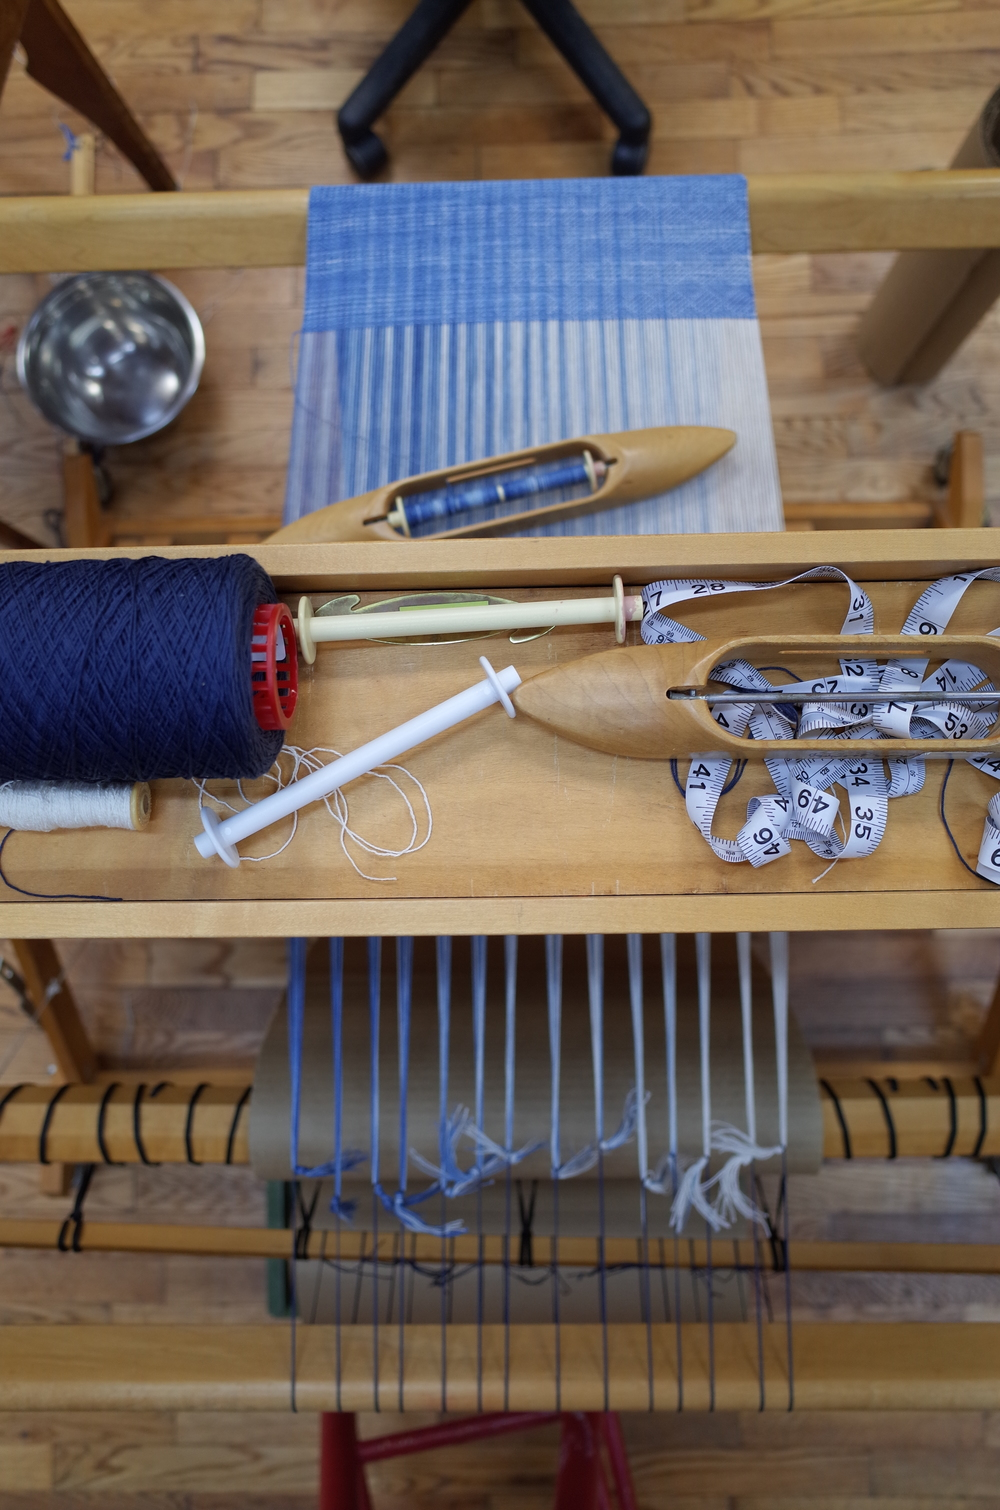 View of the loom and tools from above at the end of the weaving.